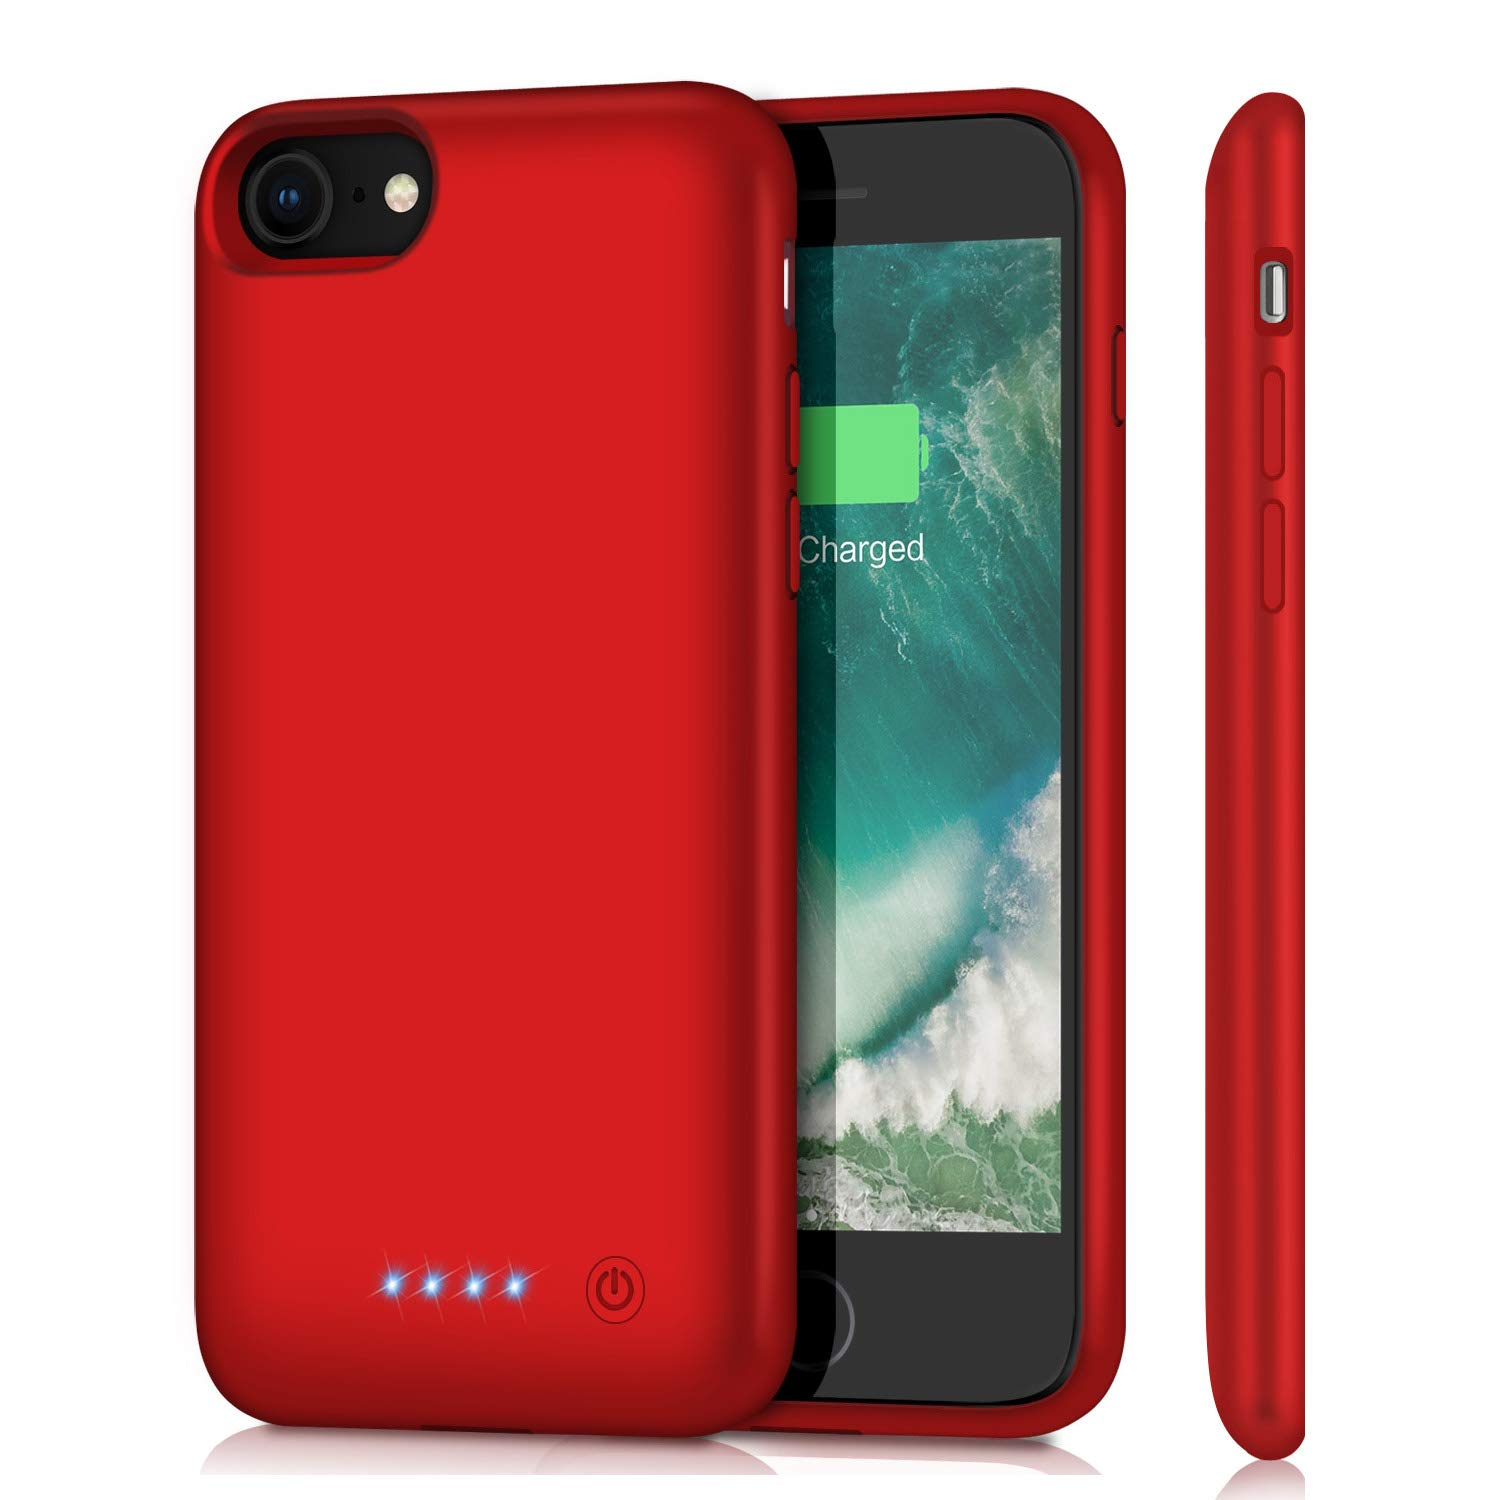 Battery Case for iPhone 8/7, Upgraded 6000mAh Rechargeable Portable Charger Case Extended Battery Pack for Apple iPhone 8 & iPhone 7 Protective Charging Case (4.7 inch)- Red Feob Fe-i7-01-RD-6000